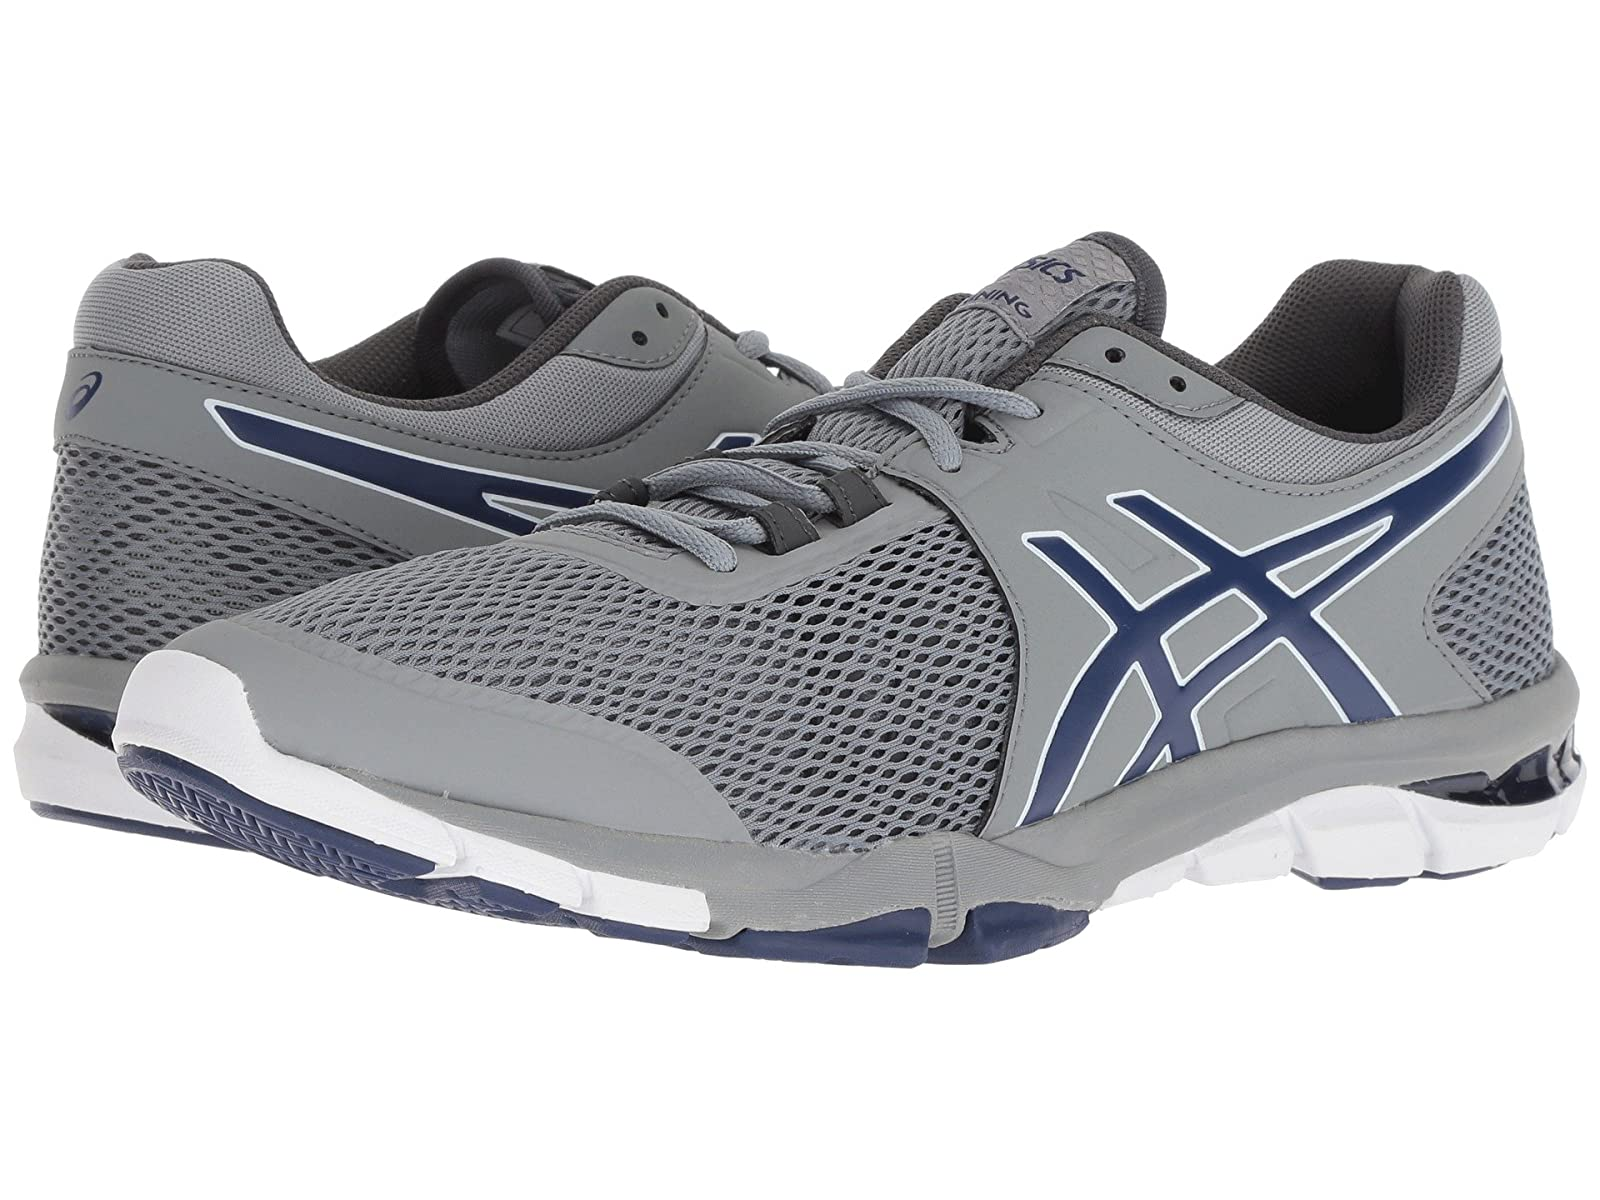 ASICS Gel-Craze TR 4Atmospheric grades have affordable shoes